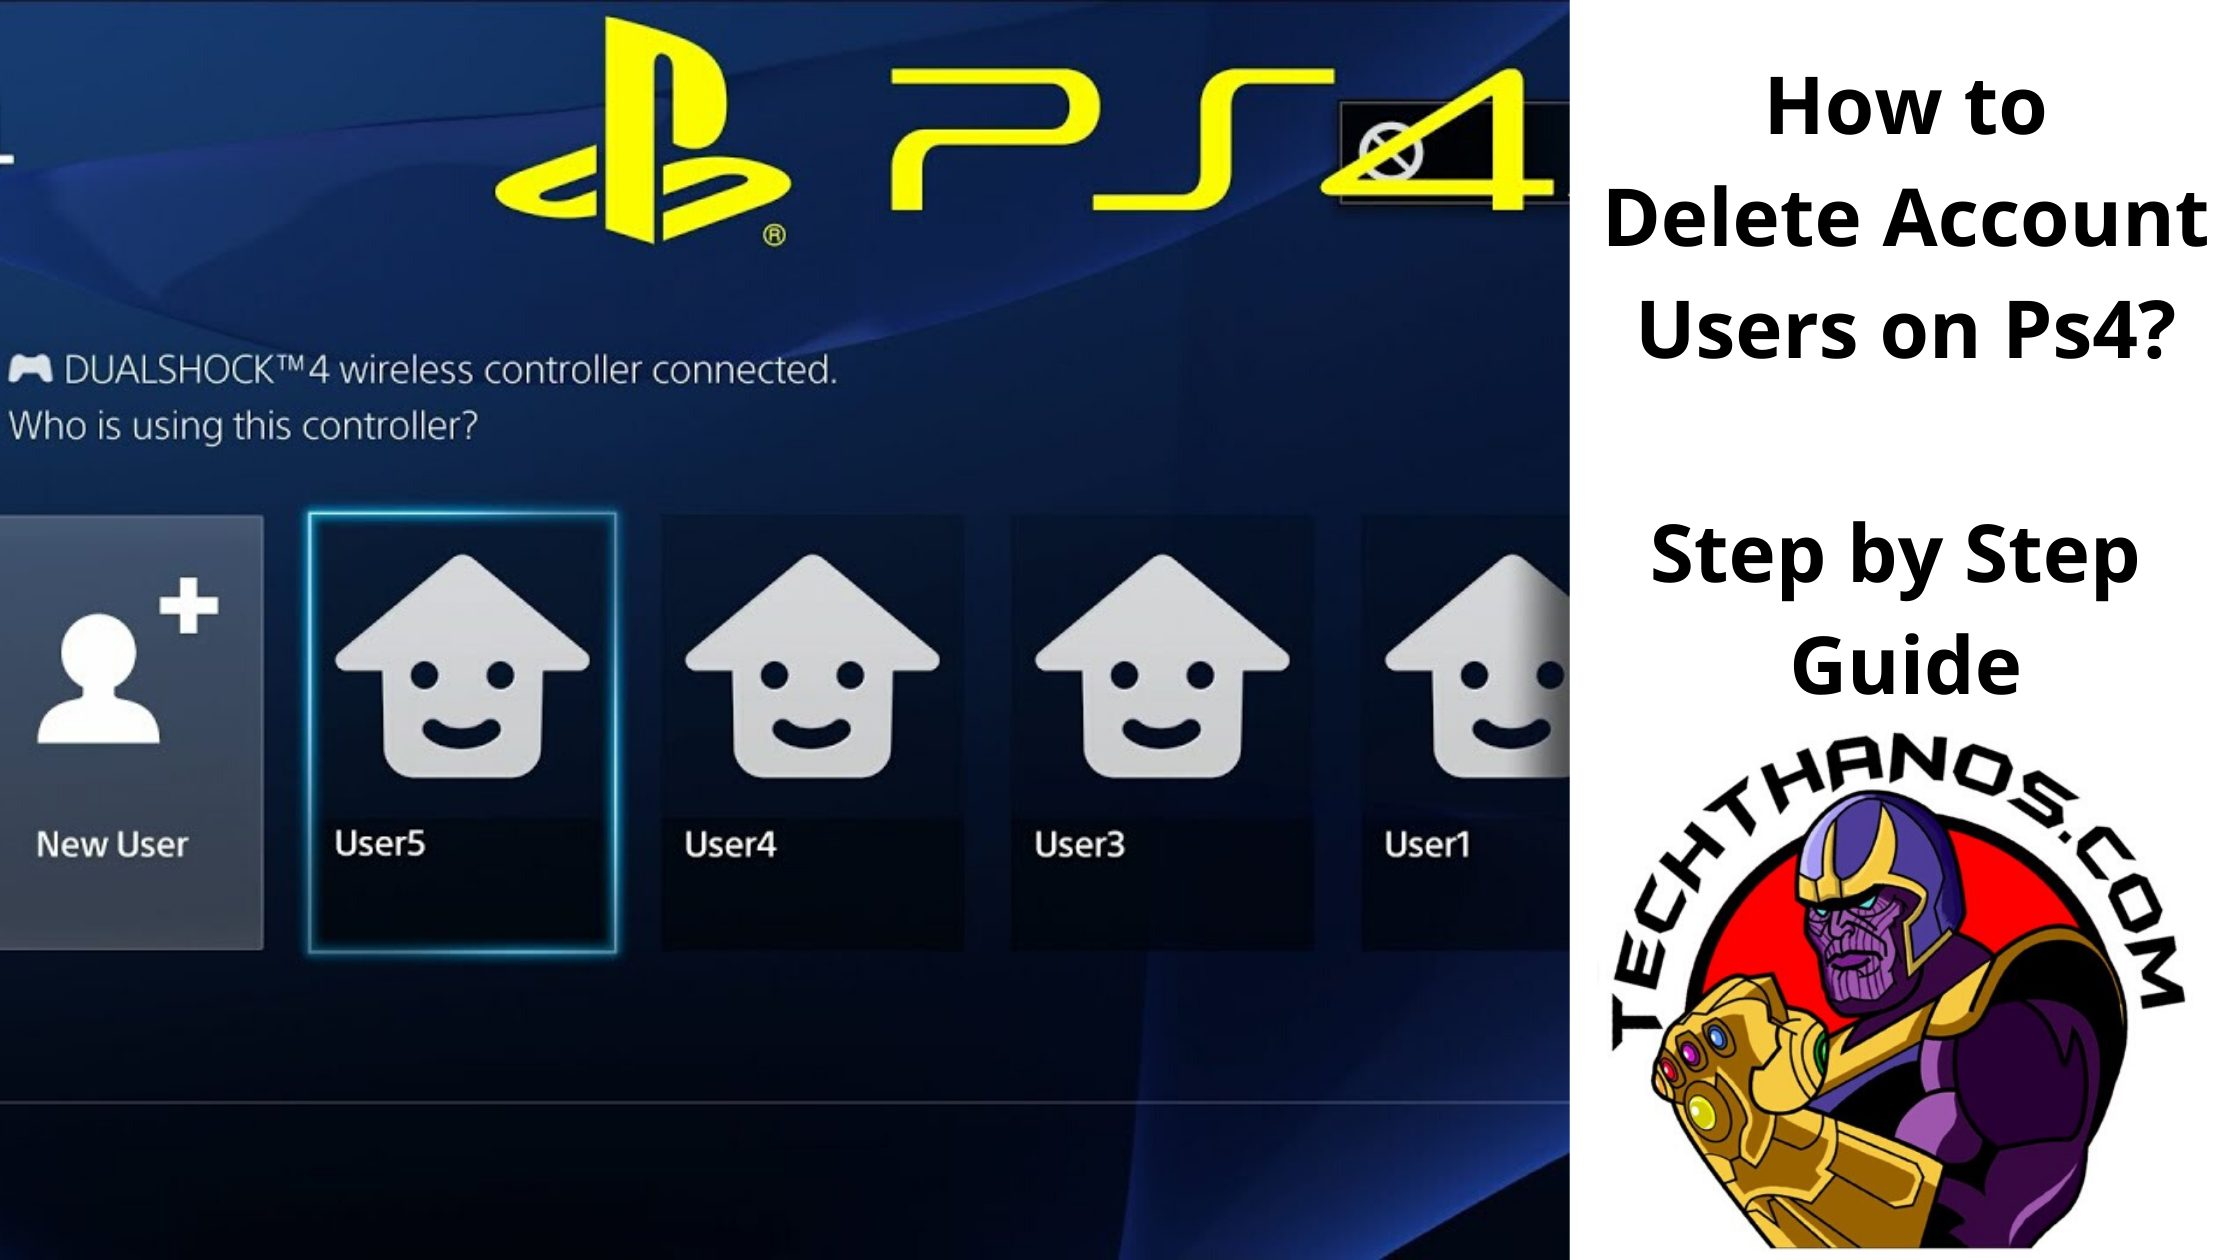 How to Delete User Account on Ps4: Step by Step Guide - Tech Thanos